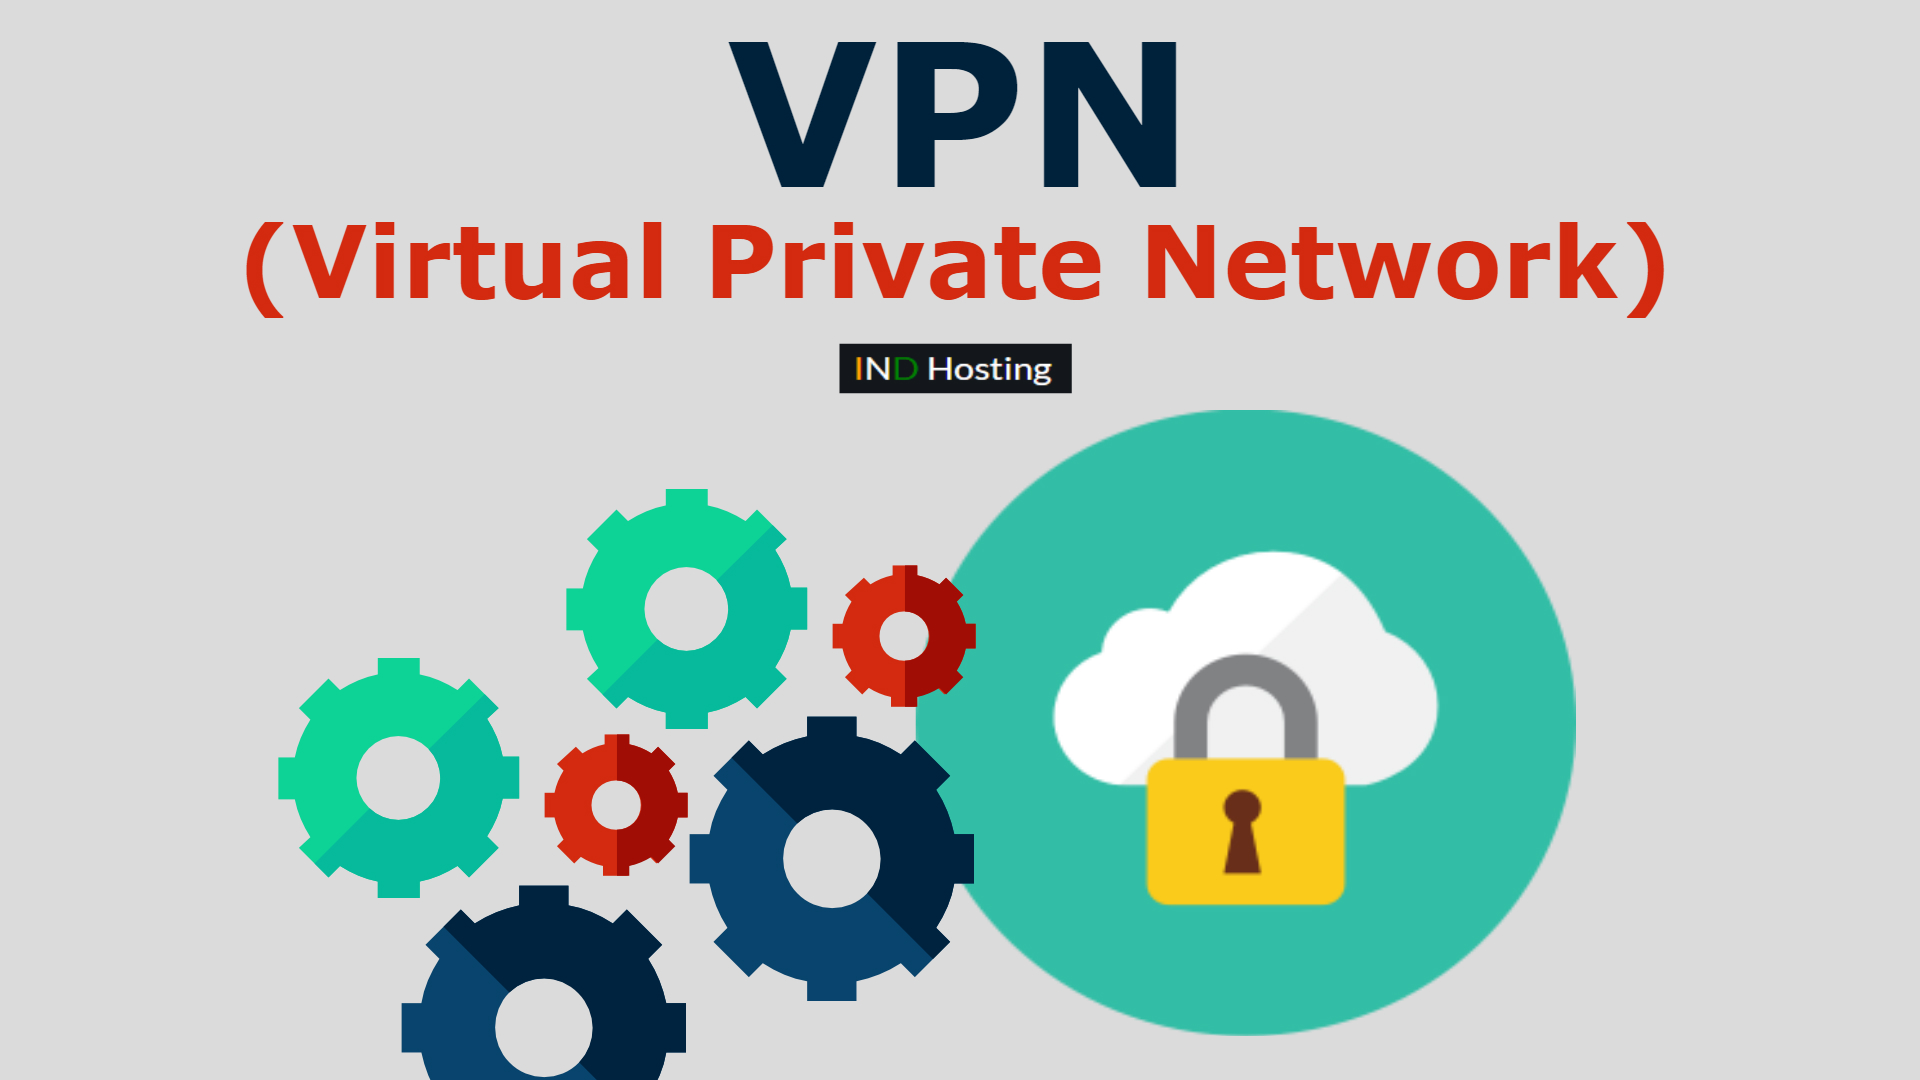 What is VPN (Virtual Private Network)?